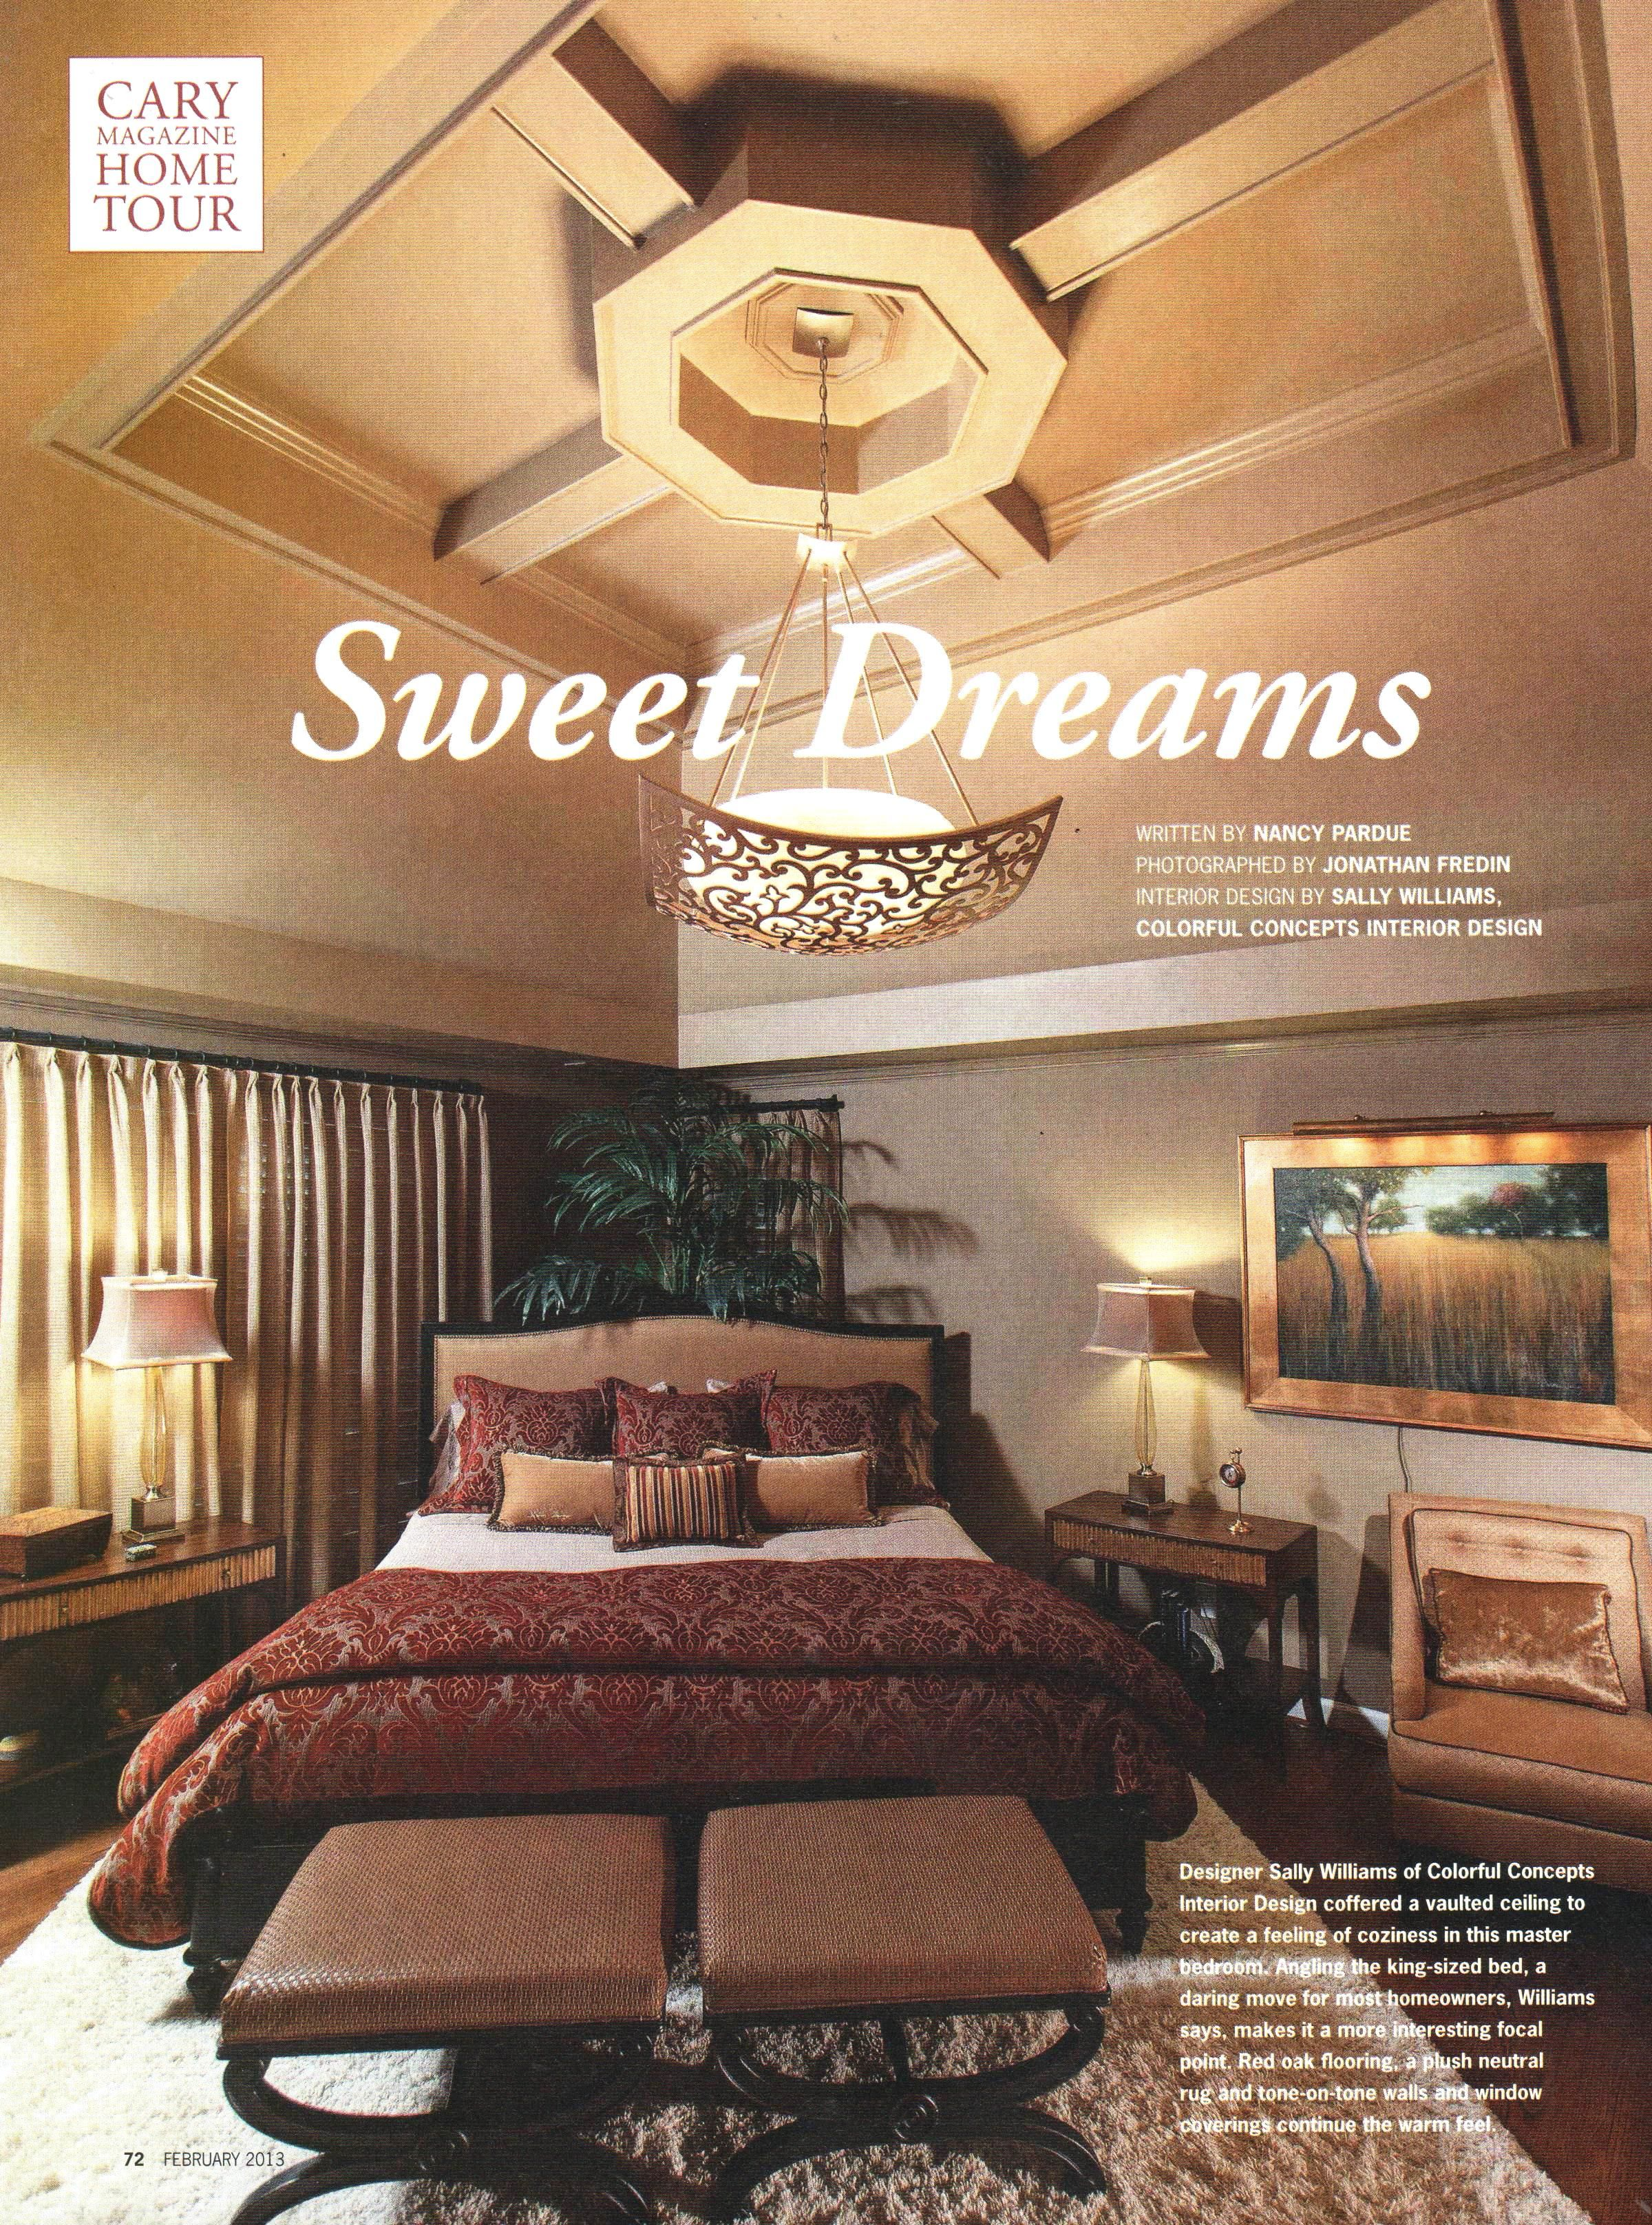 Sweet Dreams Cary Magazine February 2013 Featuring A Stunning